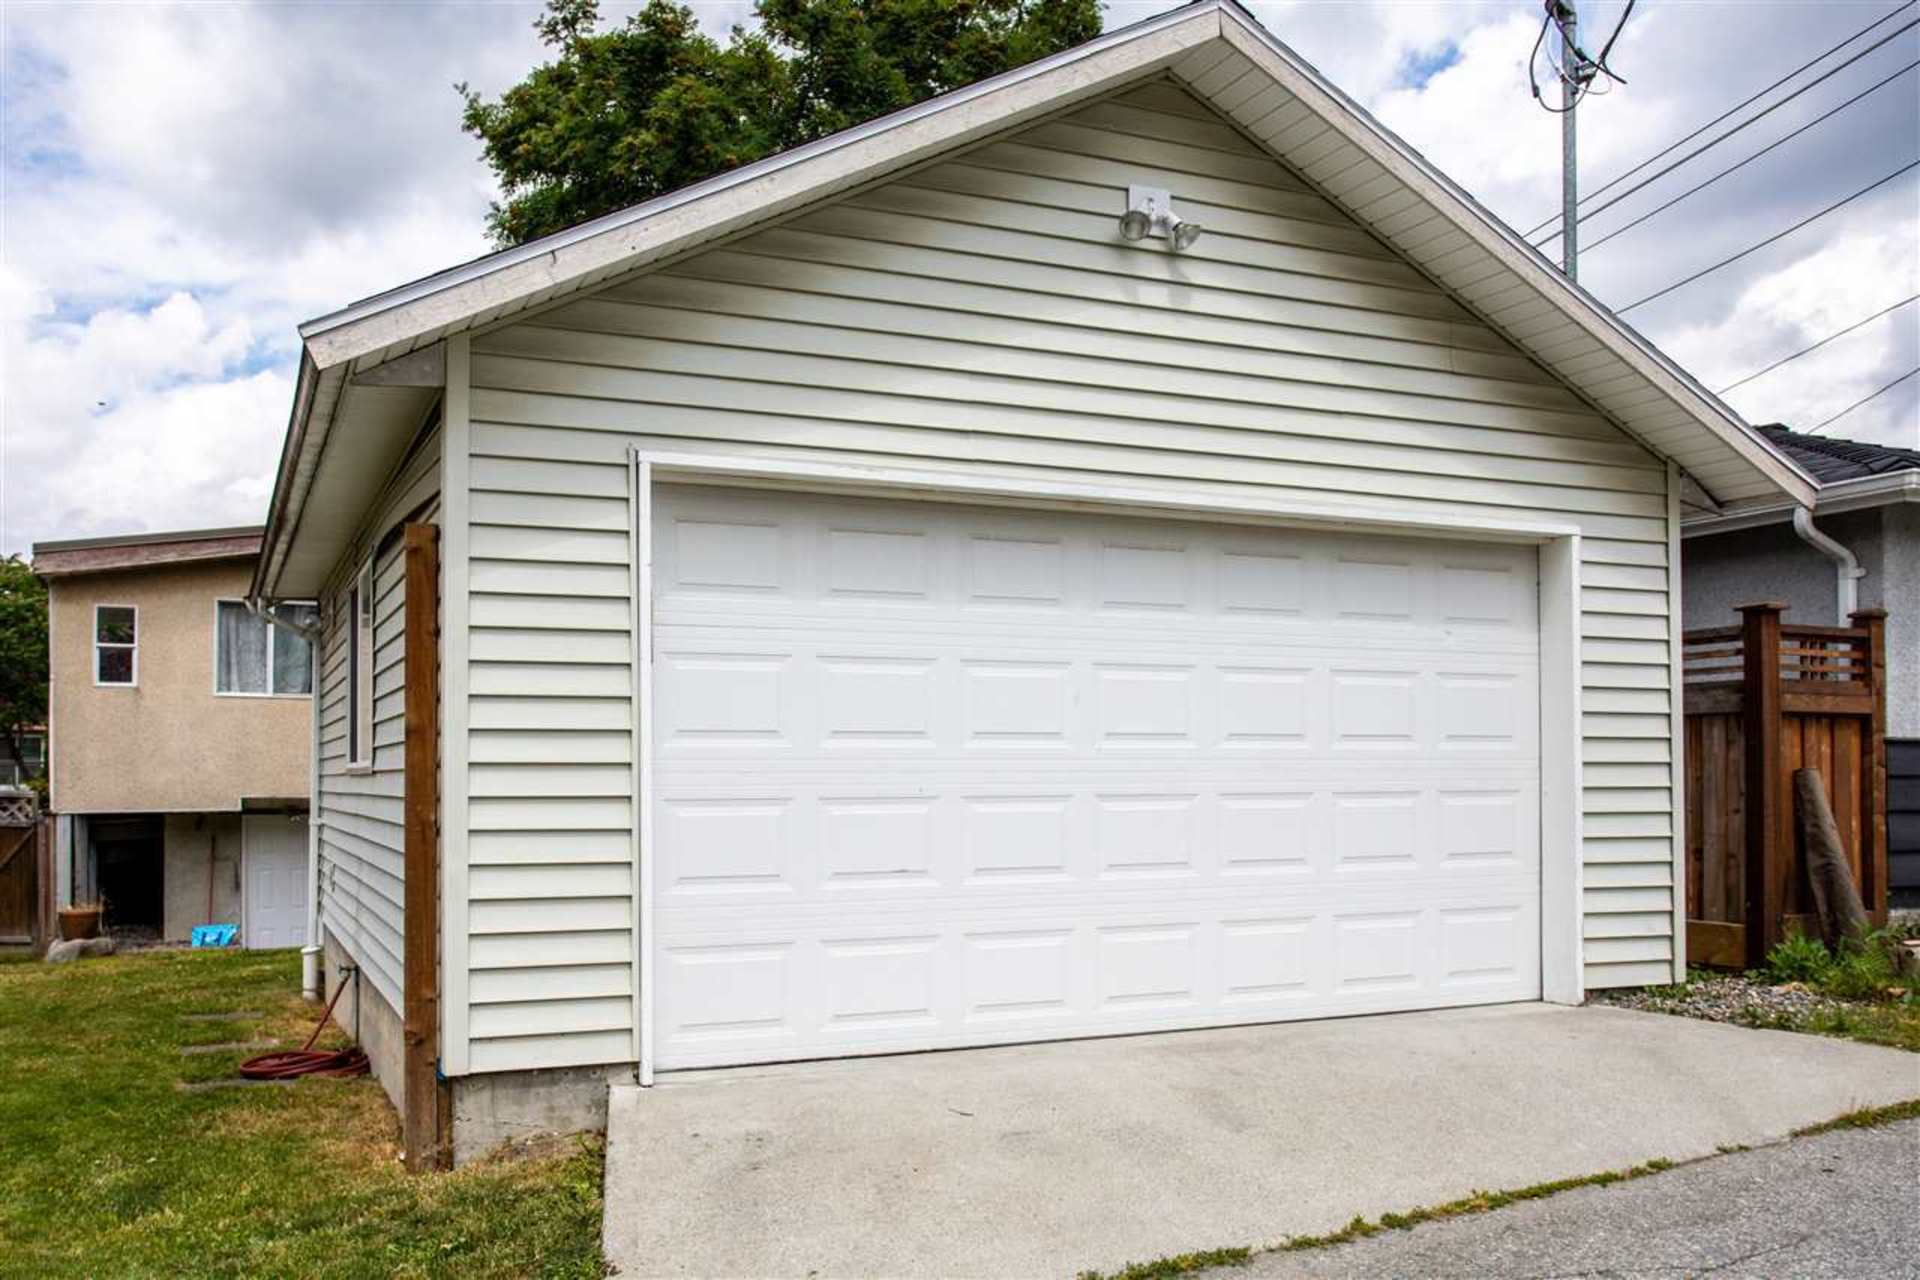 4556-pender-street-capitol-hill-bn-burnaby-north-15 at 4556 Pender Street, Capitol Hill BN, Burnaby North